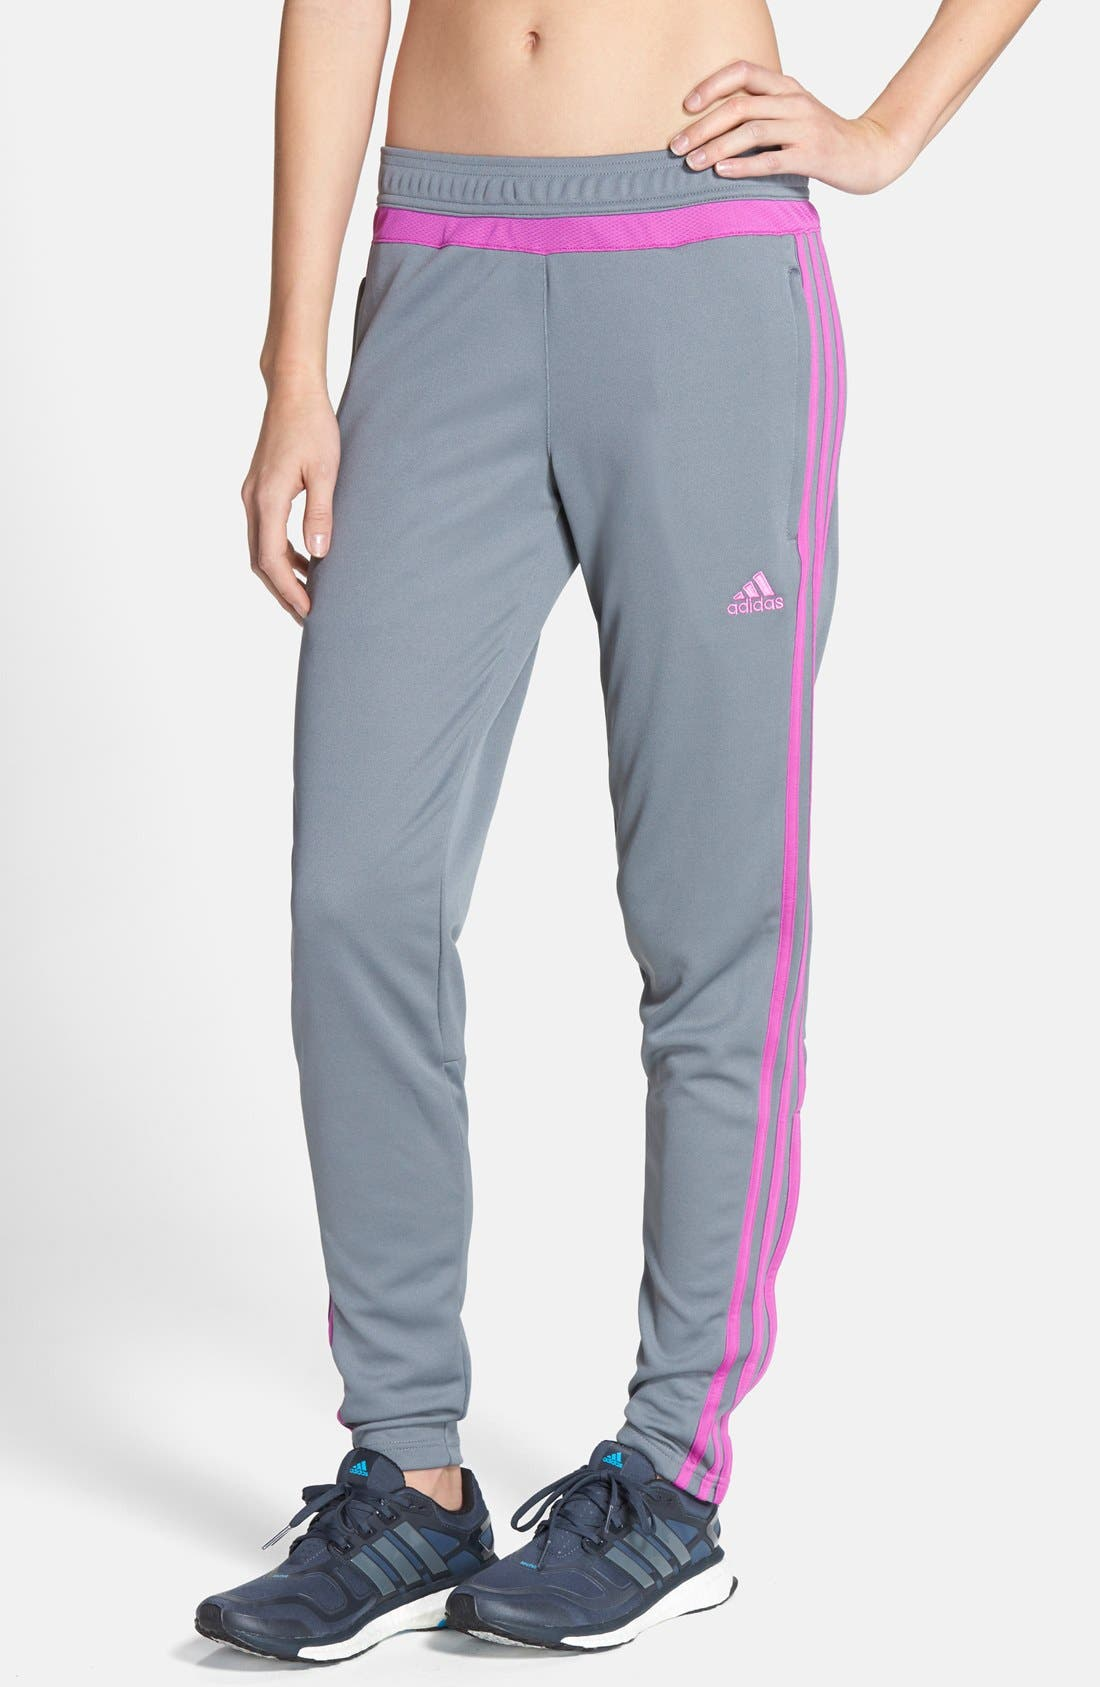 Alternate Image 1 Selected - adidas 'Trio 15' CLIMACOOL® Training Pants